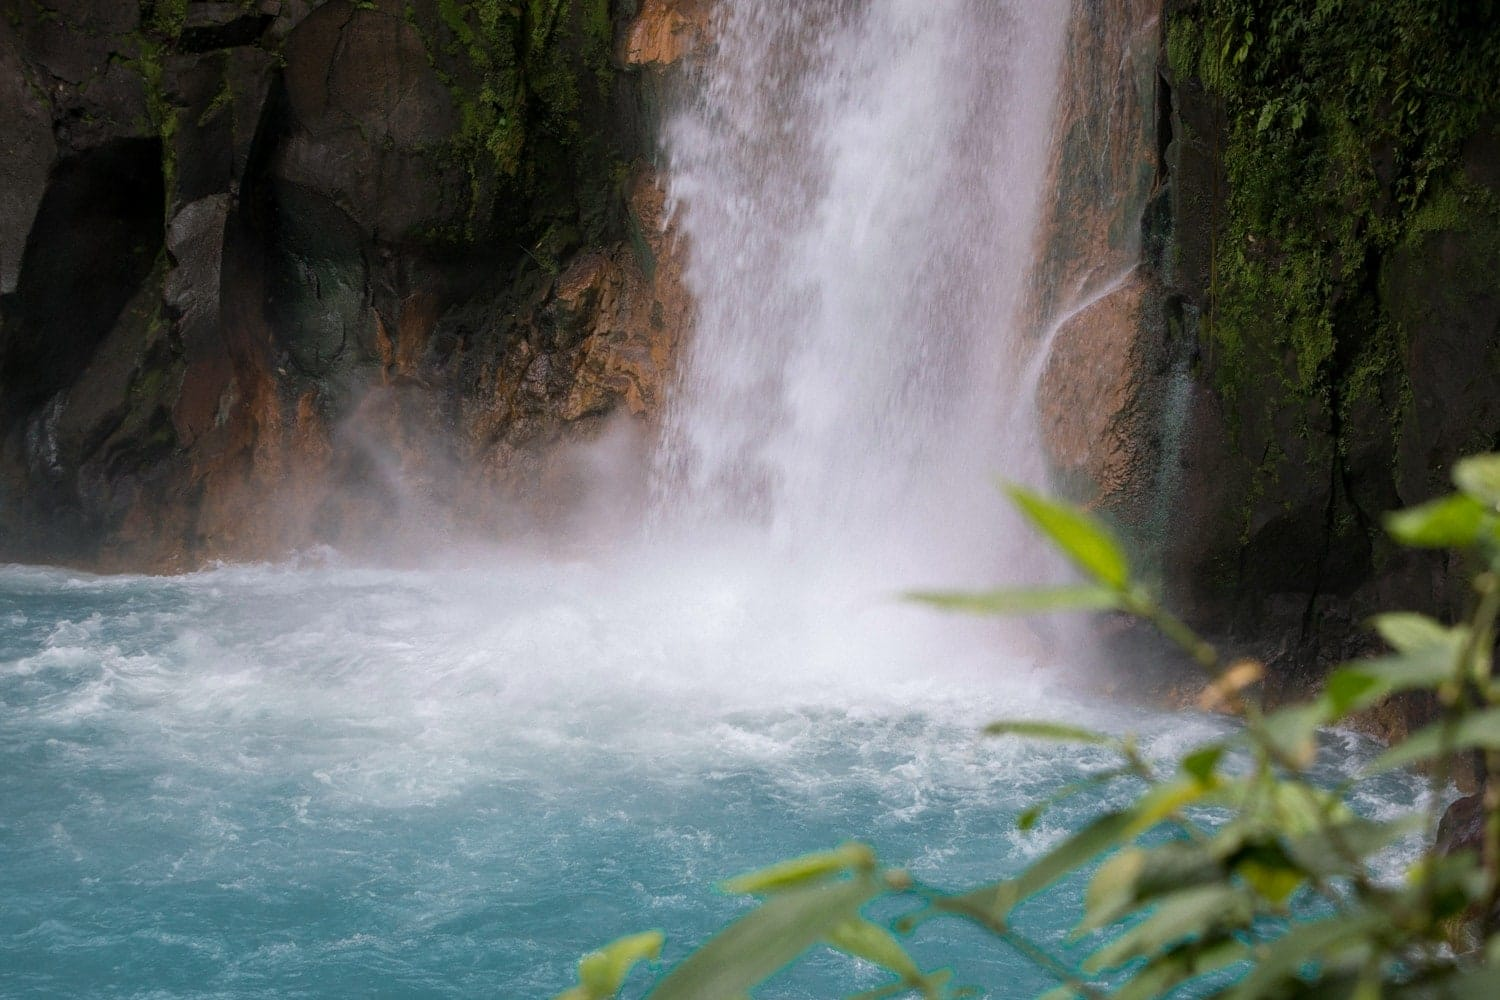 Water from the Rio Celeste Waterfall fills a lagoon with blue water.